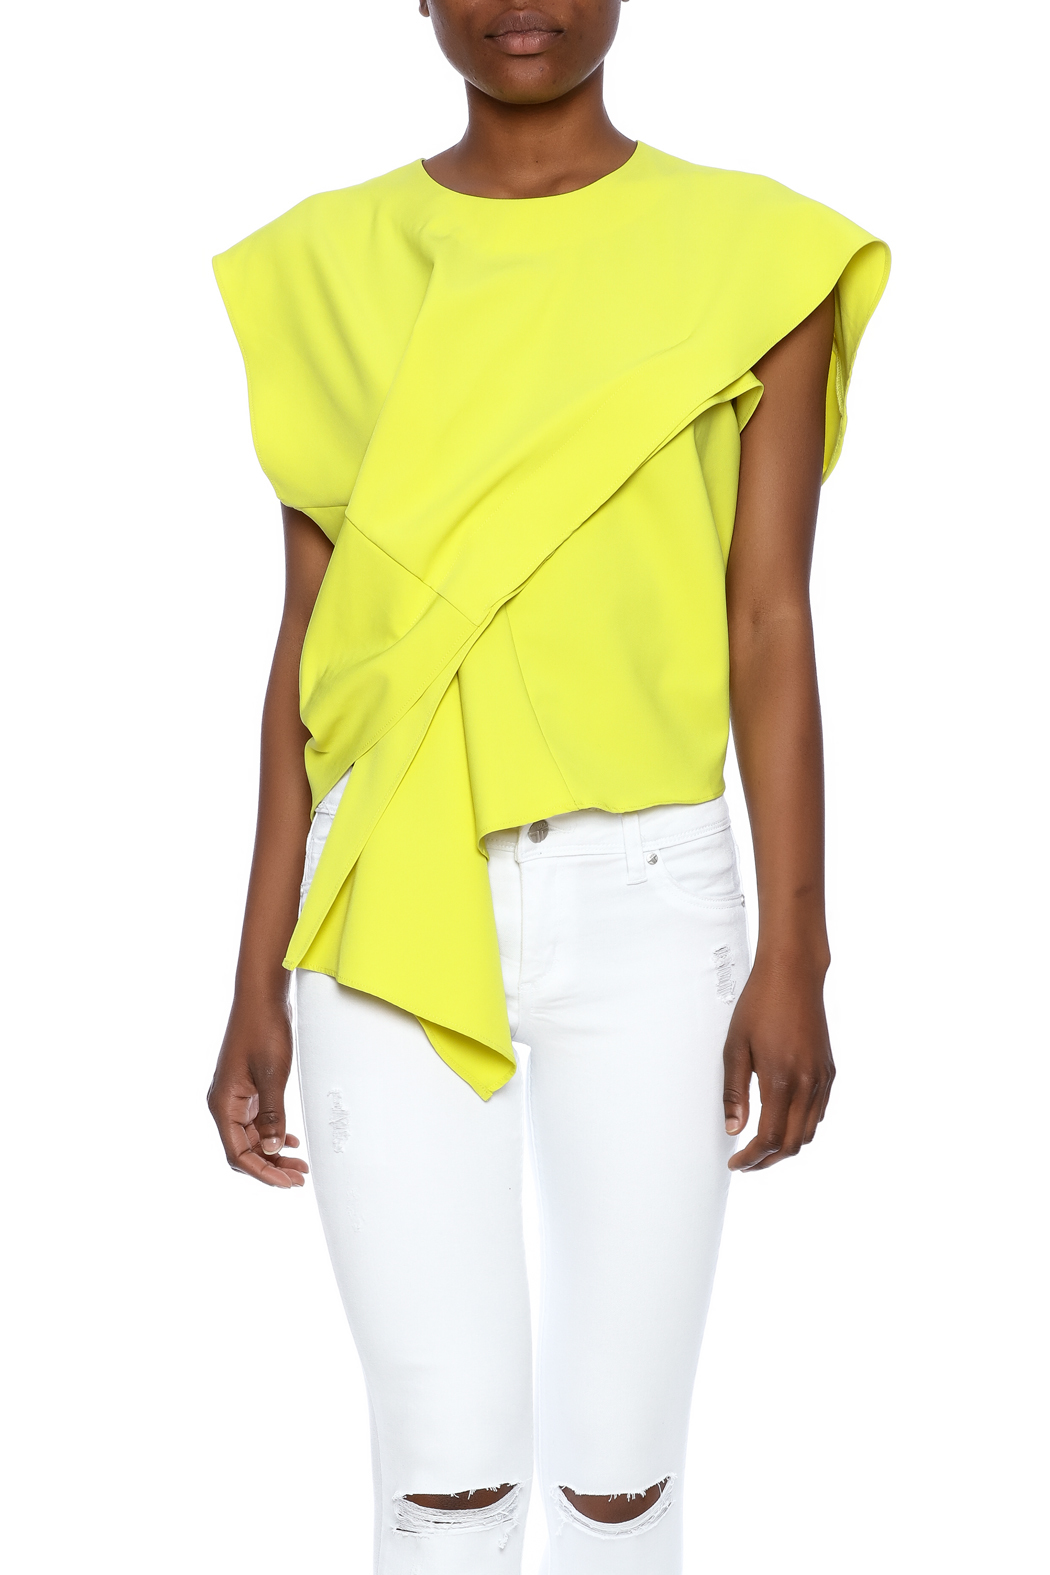 Gracia Yellow Origami Top from West Village by Pink ... - photo#2